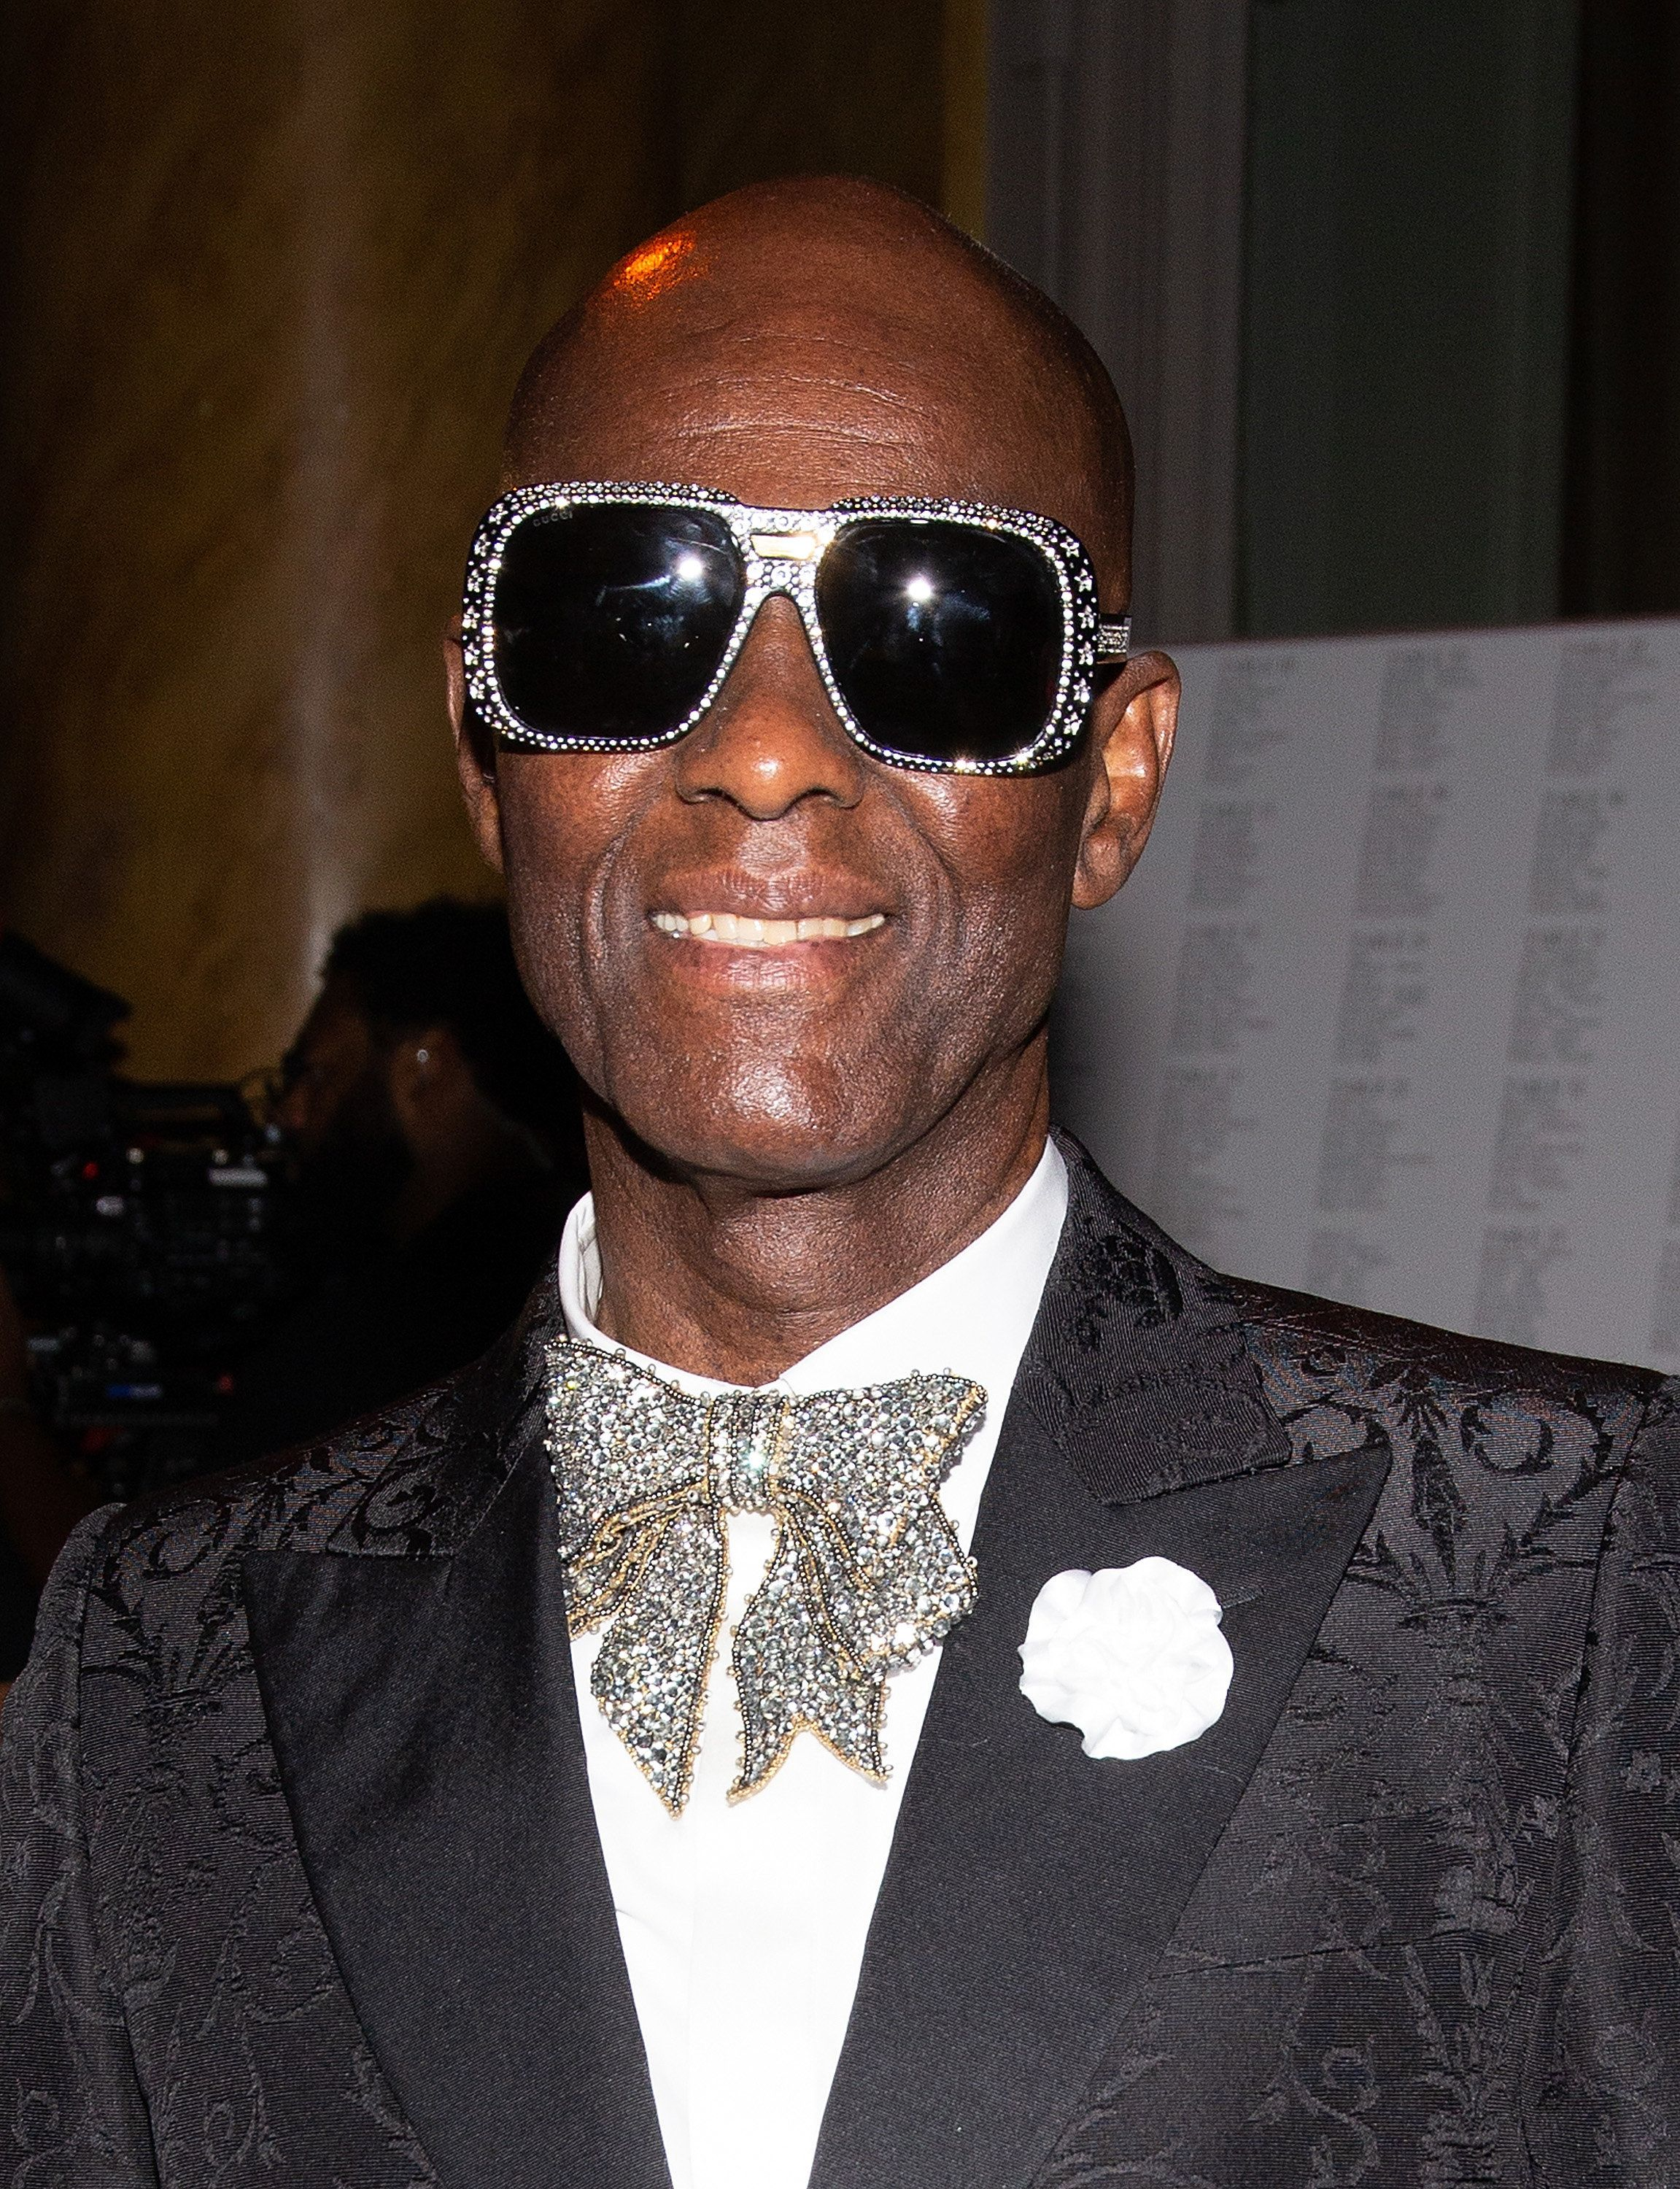 NEW YORK, NY - SEPTEMBER 04:  Dapper Dan attends Harlem's Fashion Row - Front Row during New York Fashion Week - September 2018  at Capitale on September 4, 2018 in New York City.  (Photo by Paul Zimmerman/WireImage)